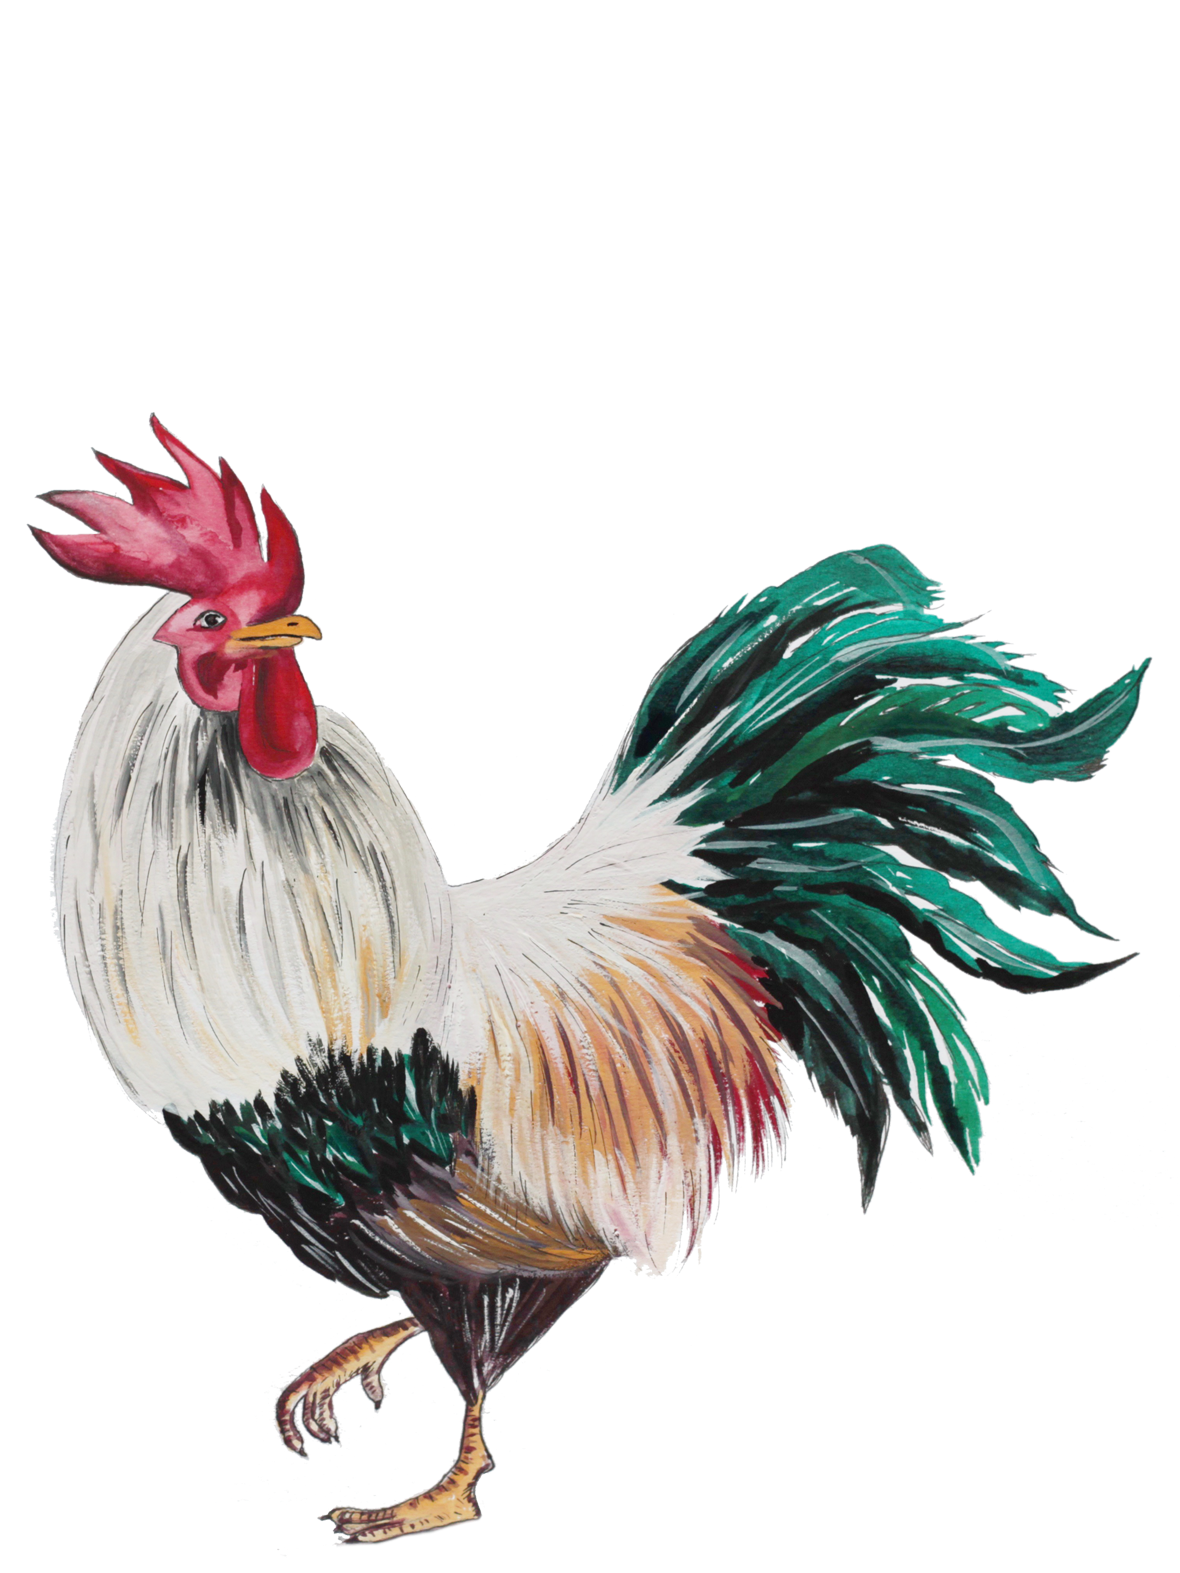 Hand drawn illustration of a Rooster